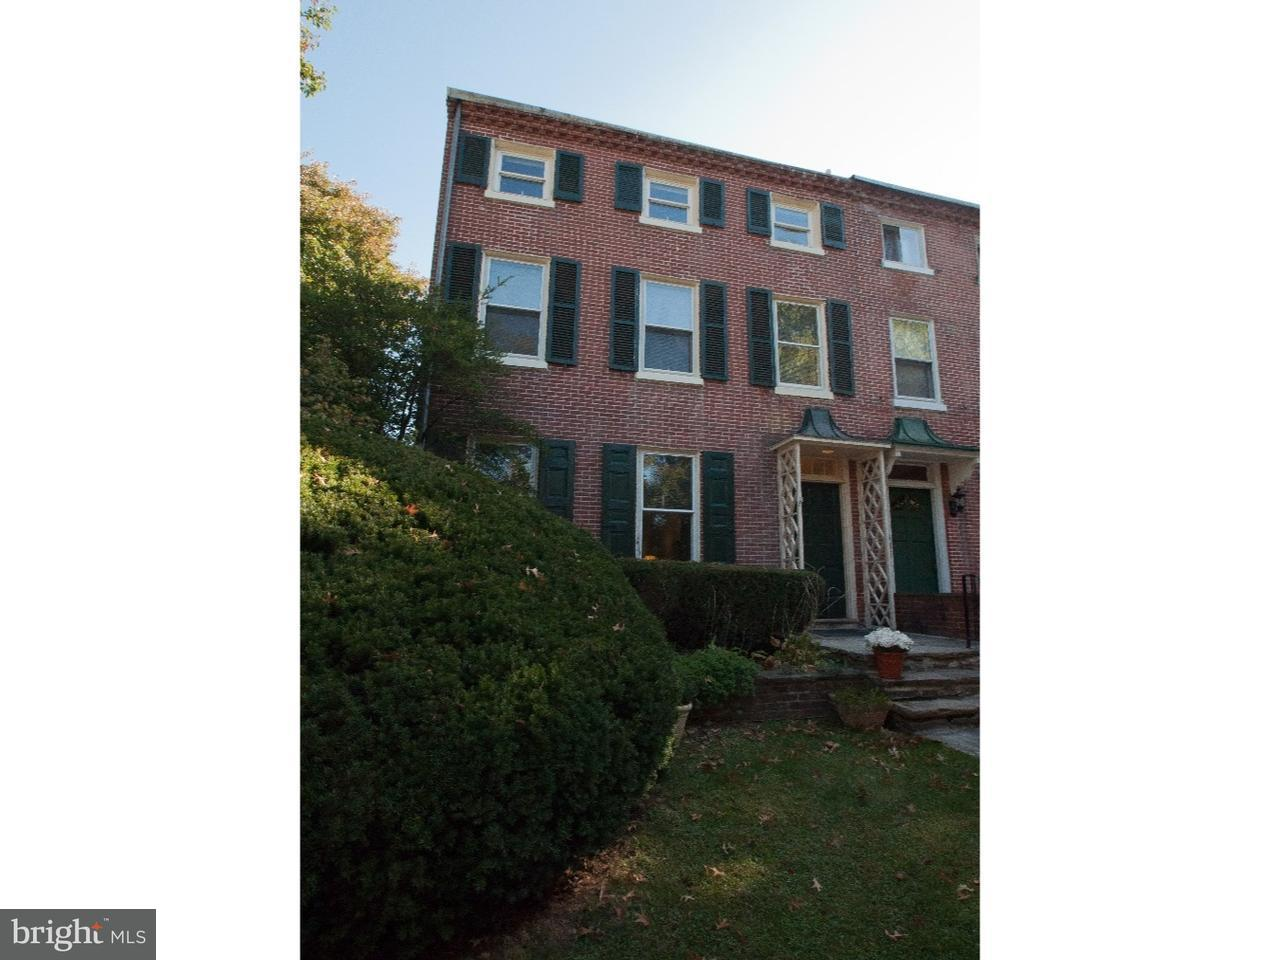 329 N High West Chester, PA 19380